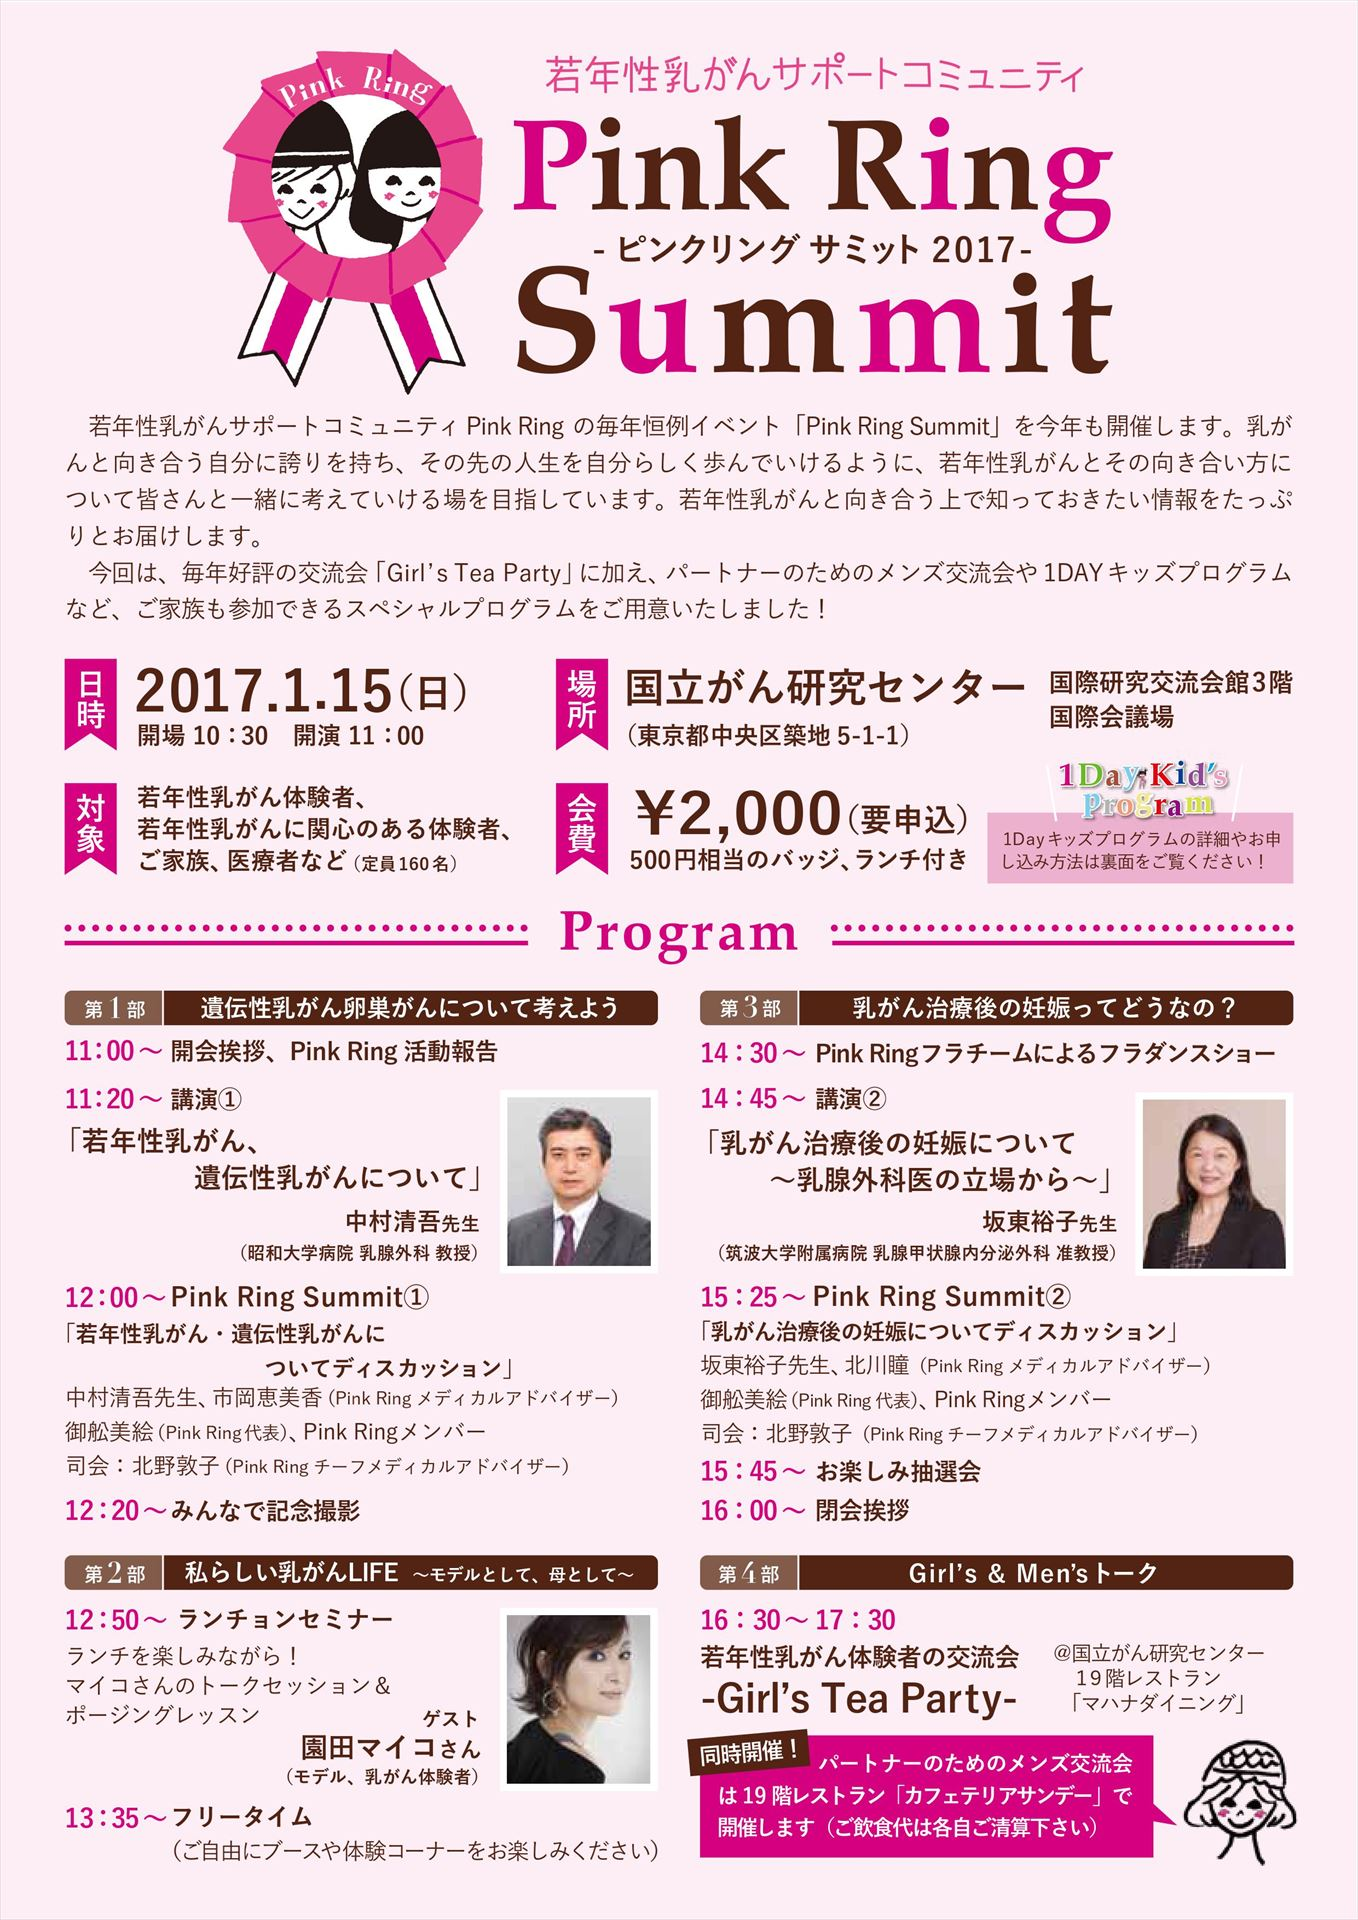 Pink Ring Summit 2017